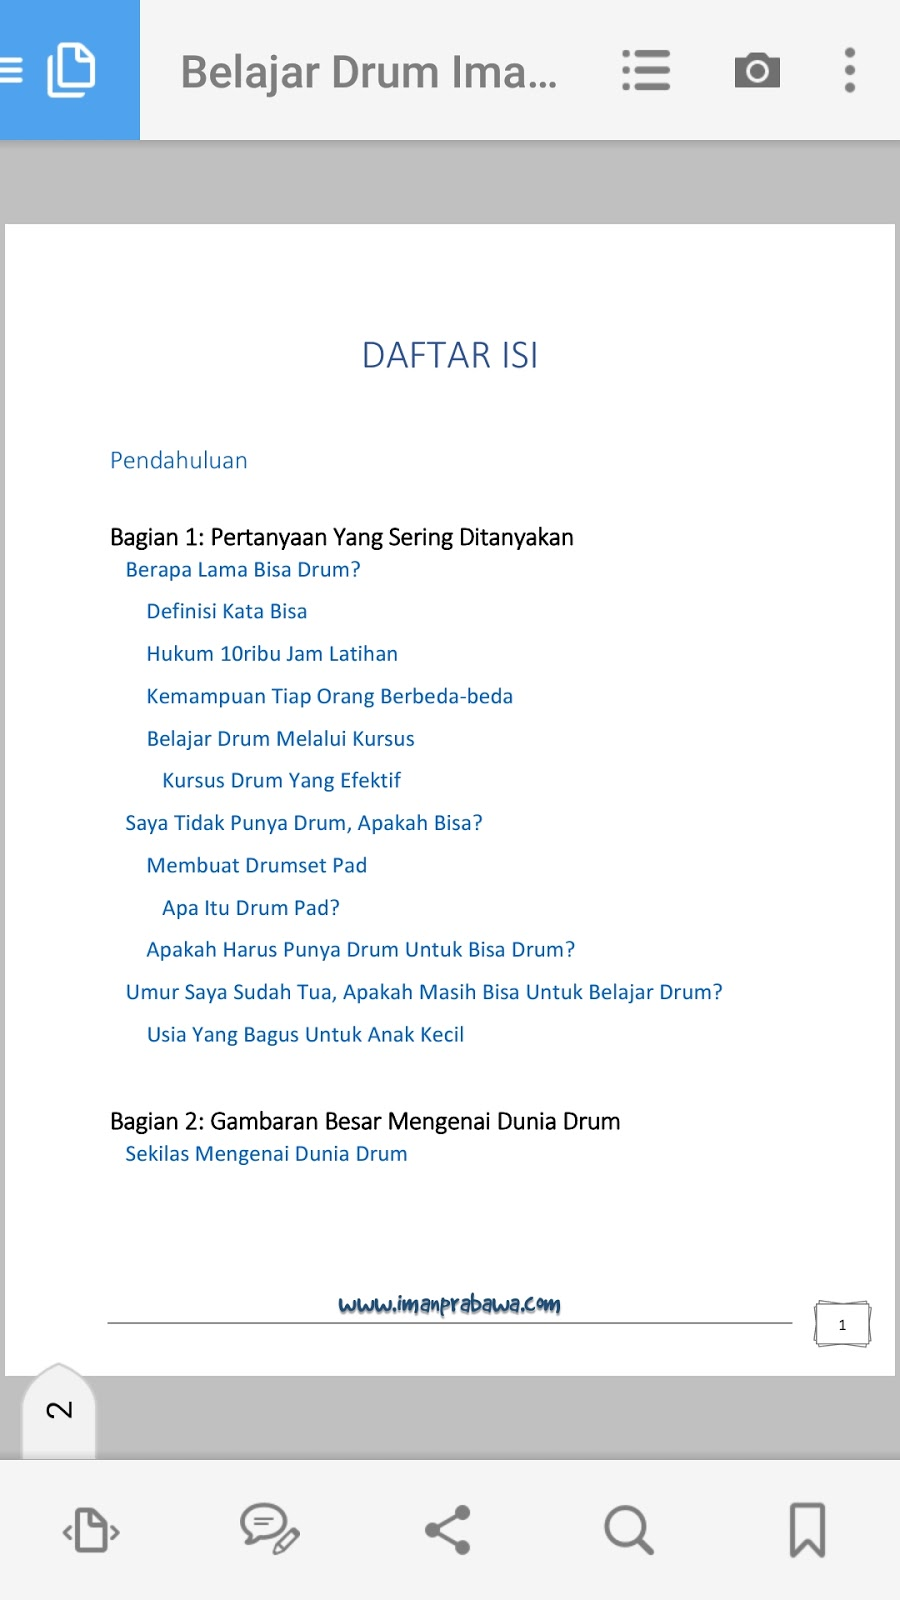 Ebook Iman Prabawa 1